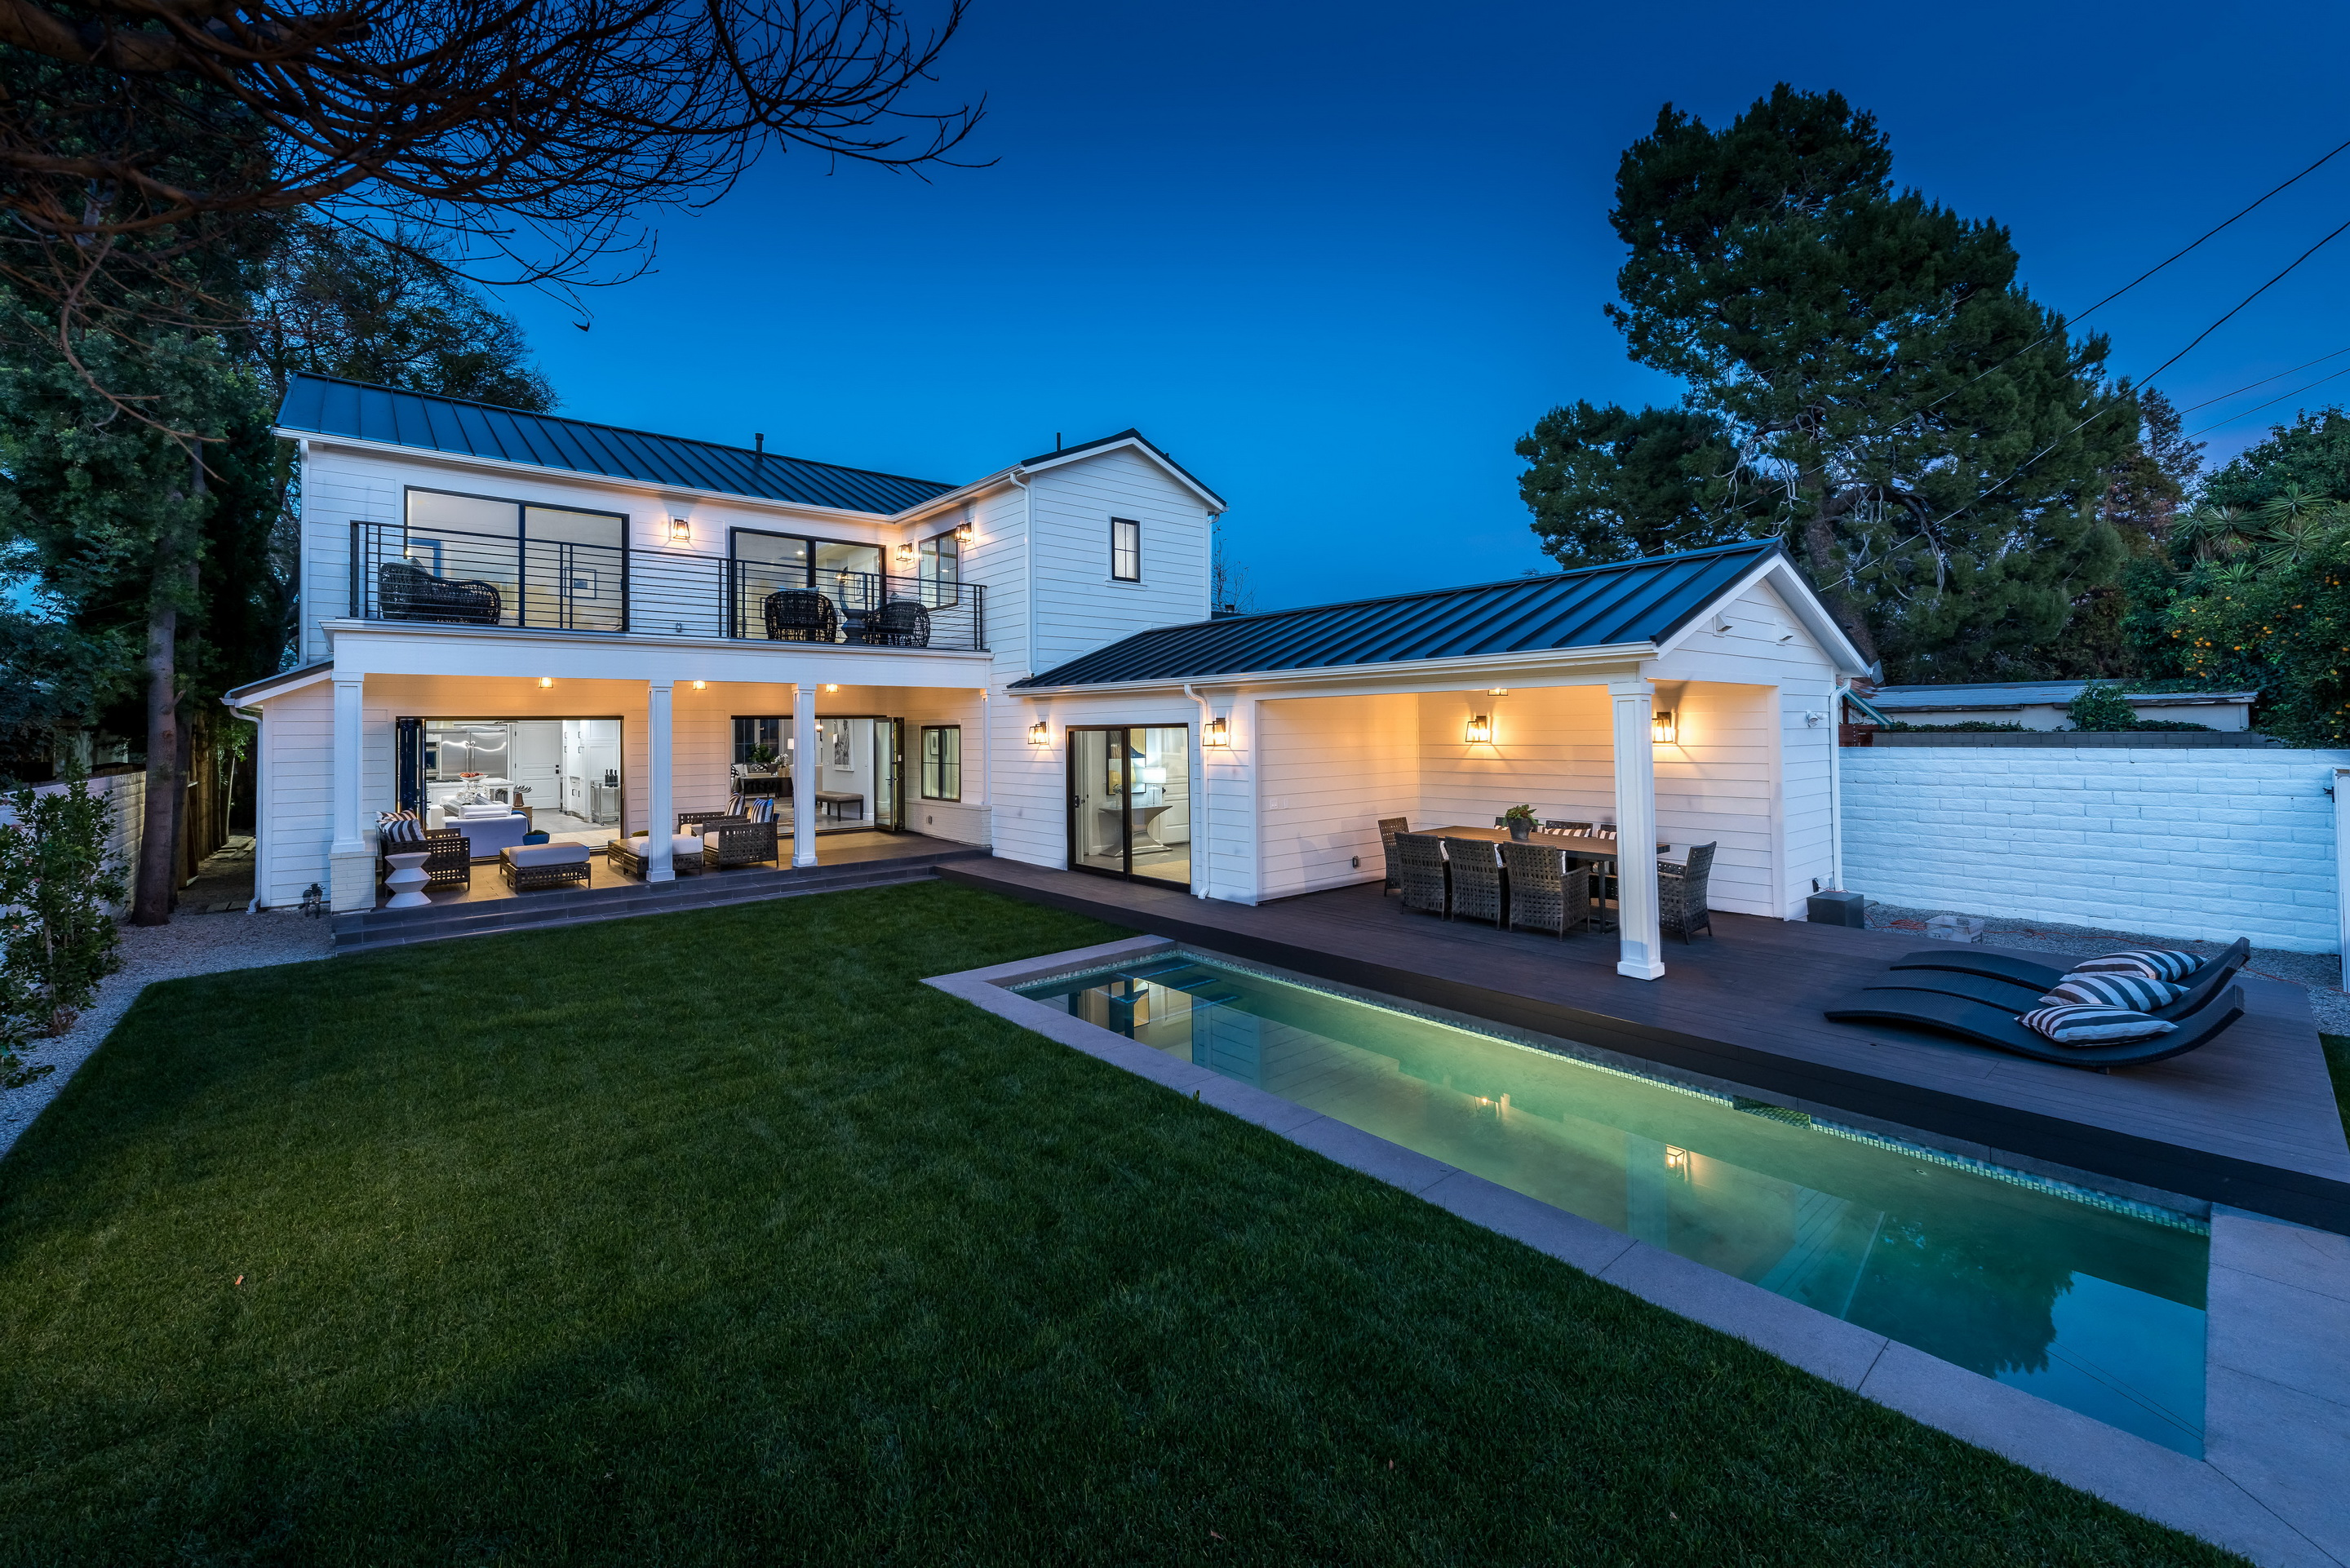 Woodbridge Residence Studio City Architect Magazine